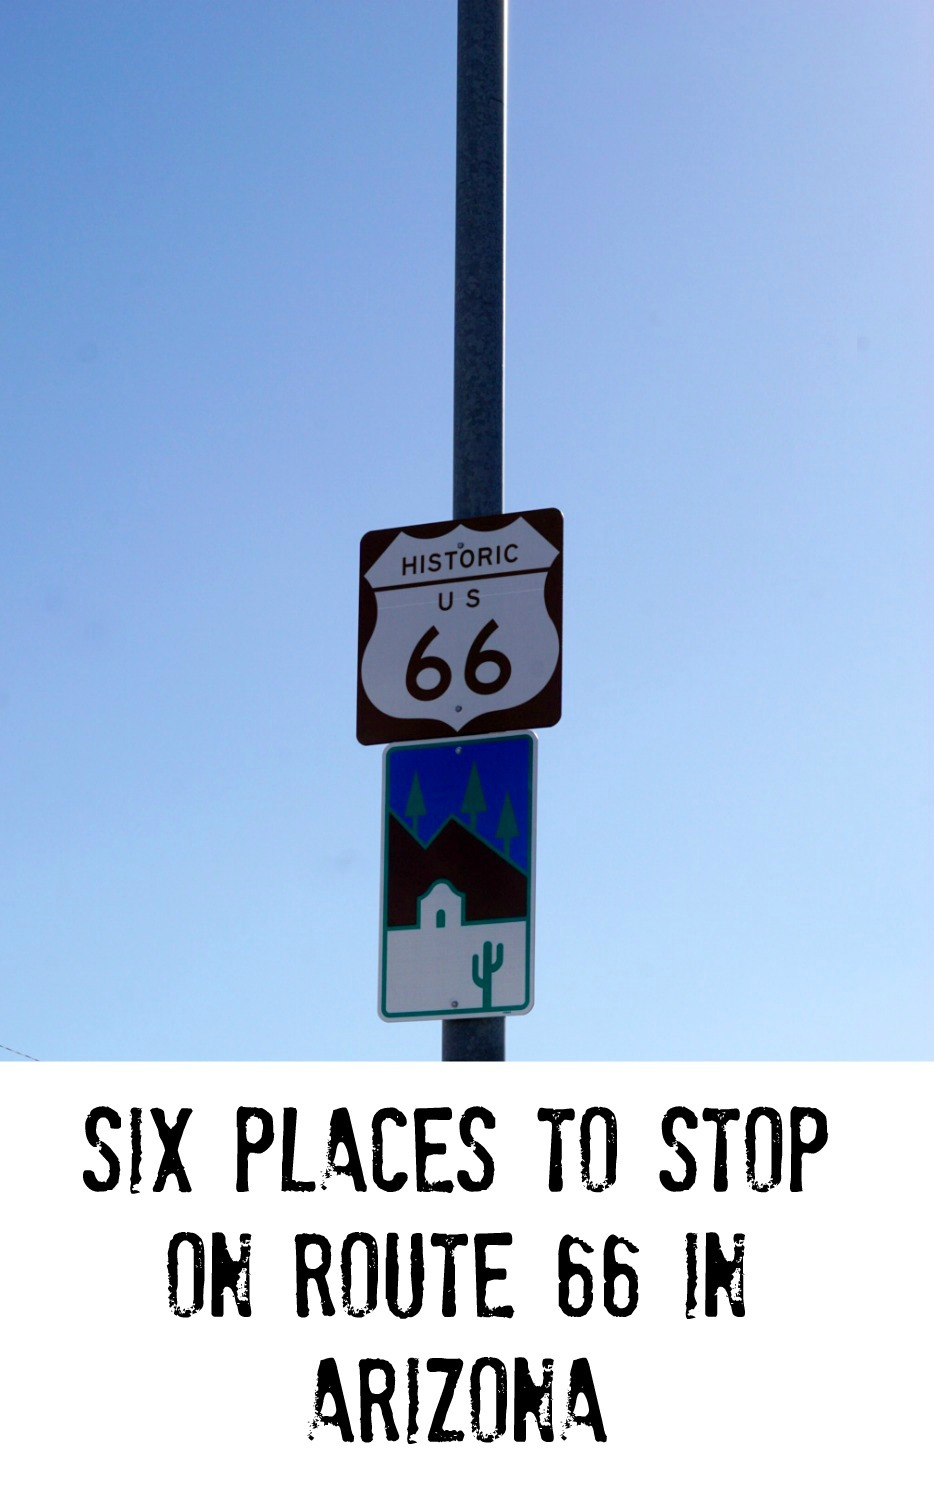 Siz Places to stop on I-40 Along Route 66 in Arizona